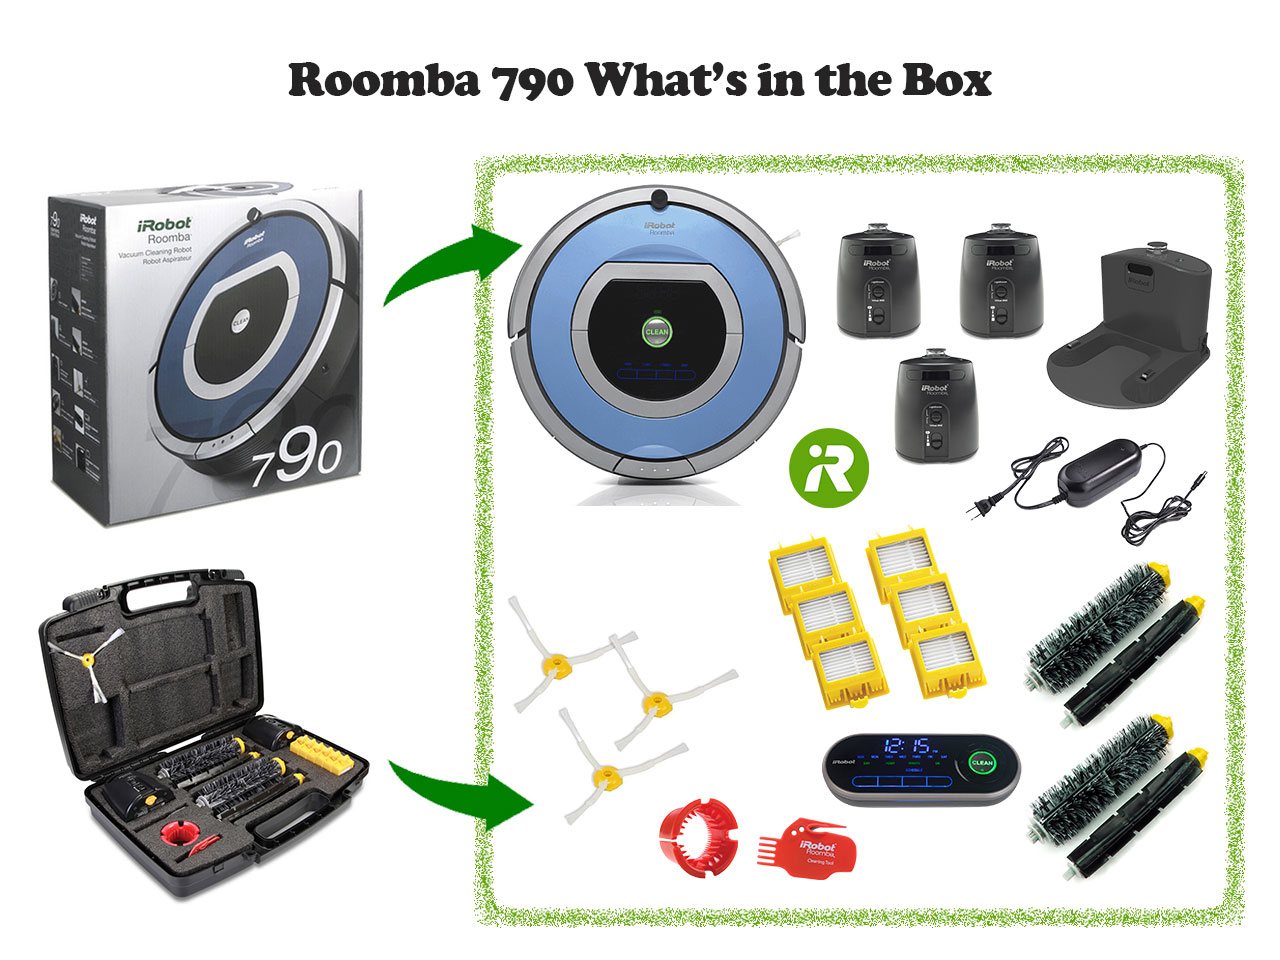 Roomba 790 in box